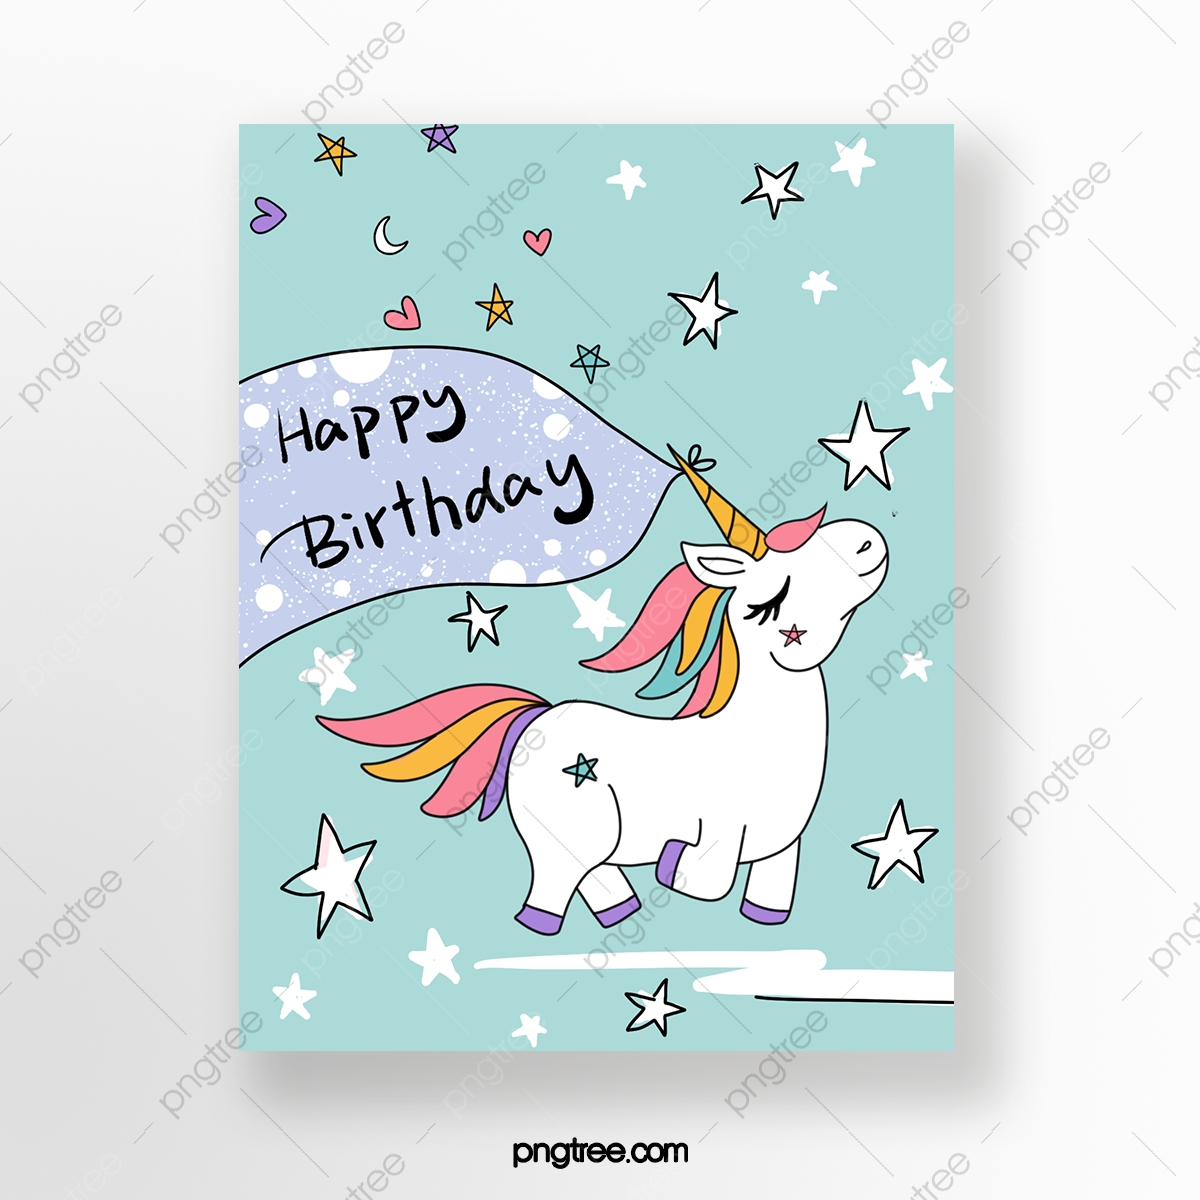 Unicorn Birthday Card Template Download on Pngtree